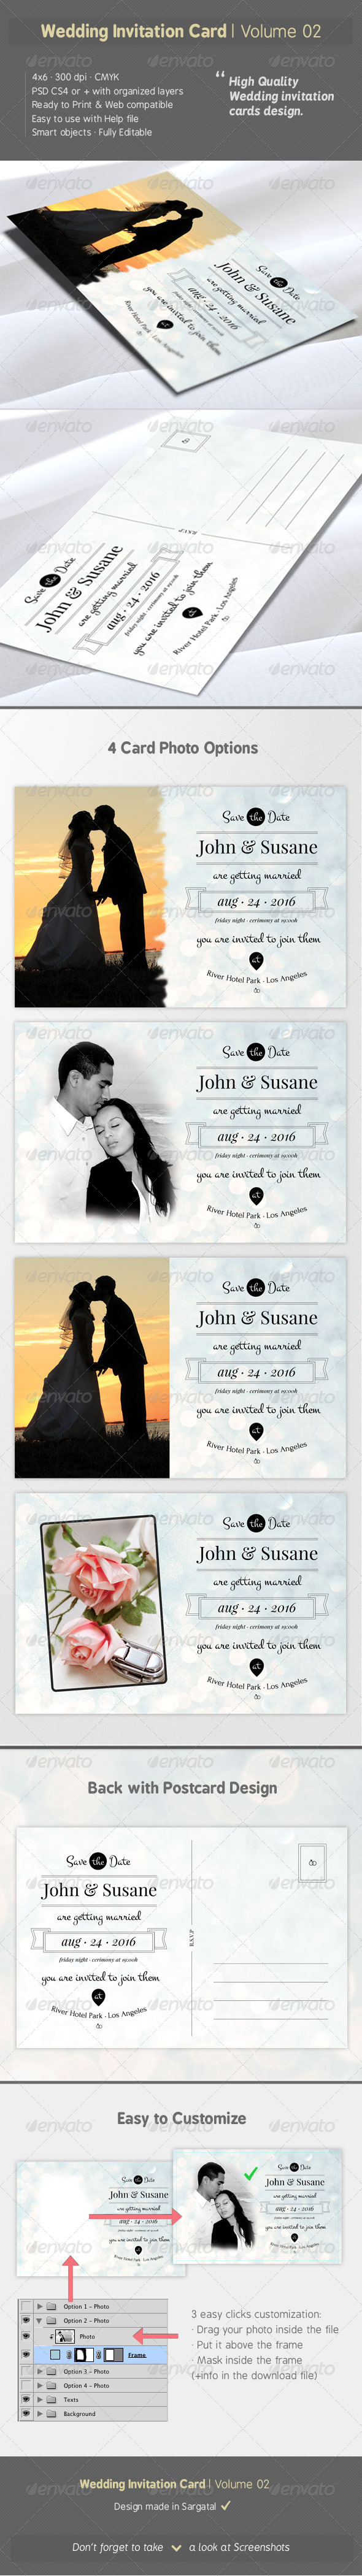 Wedding Invitation Card - Volume 02 - Weddings Cards & Invites